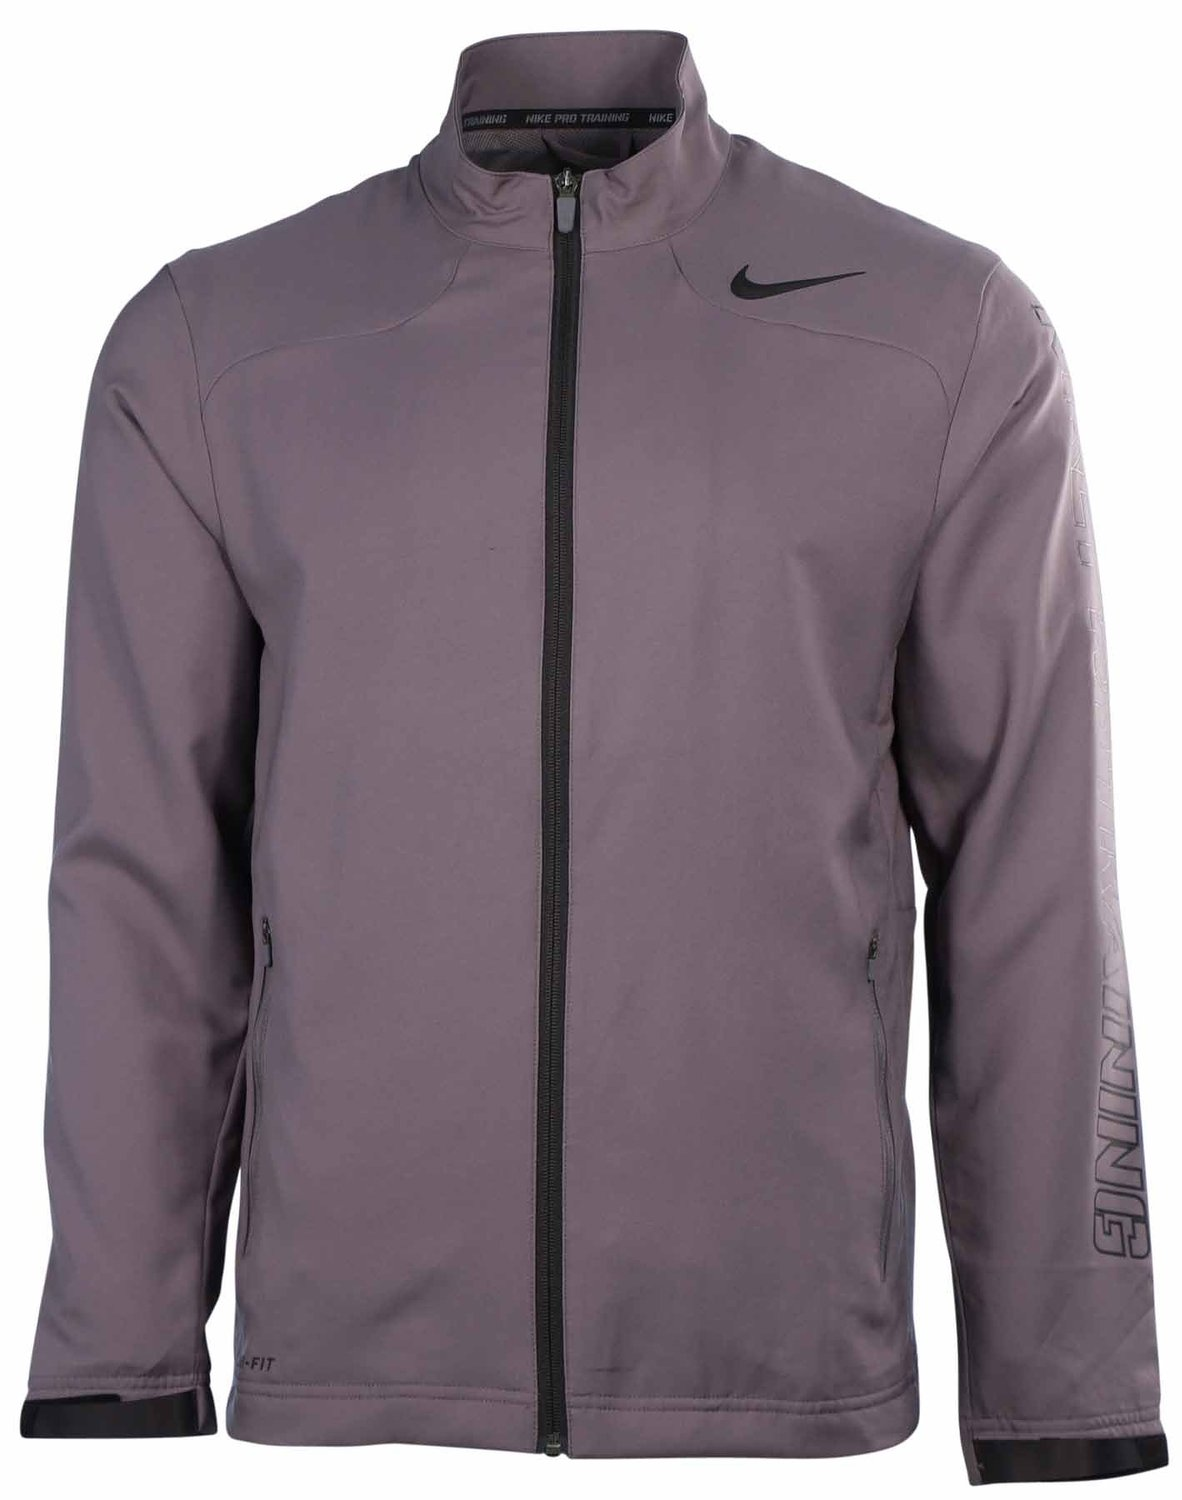 de221b45eef68 Buy Nike Mens Dri-Fit Hyperspeed Lined Training Jacket-Gray Black in ...